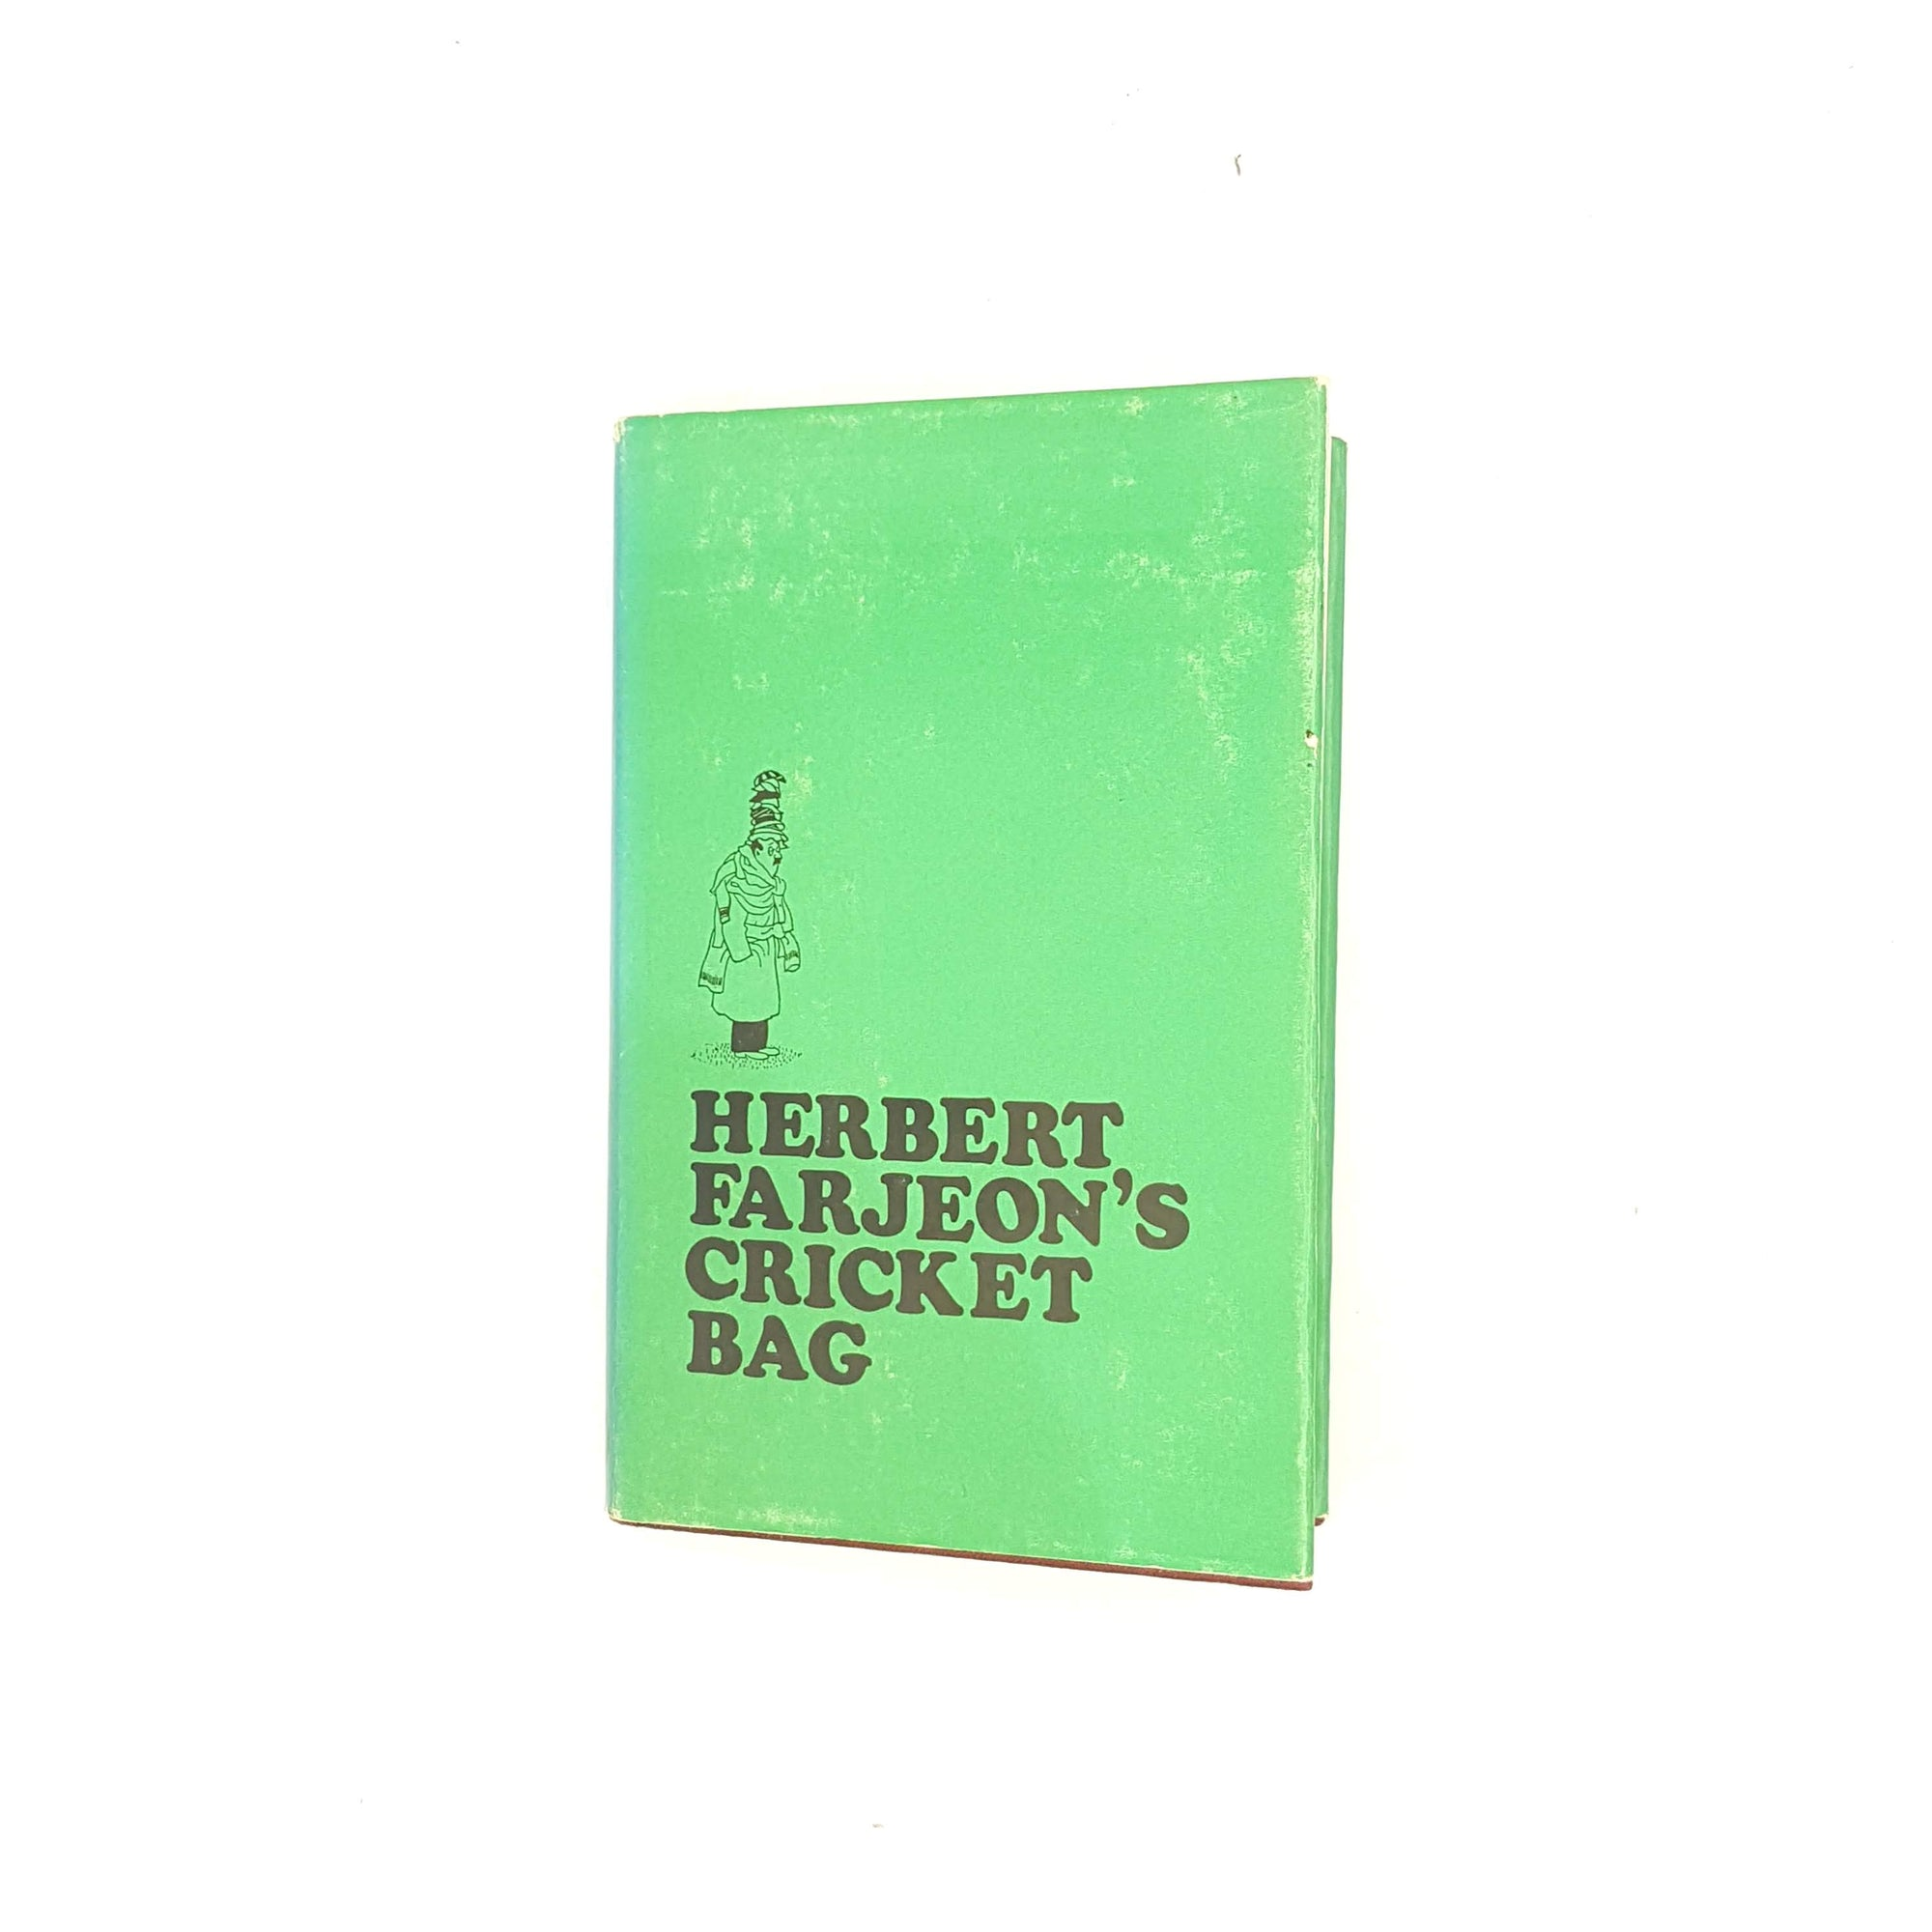 Herbert Farjeon's Cricket Bag 1969